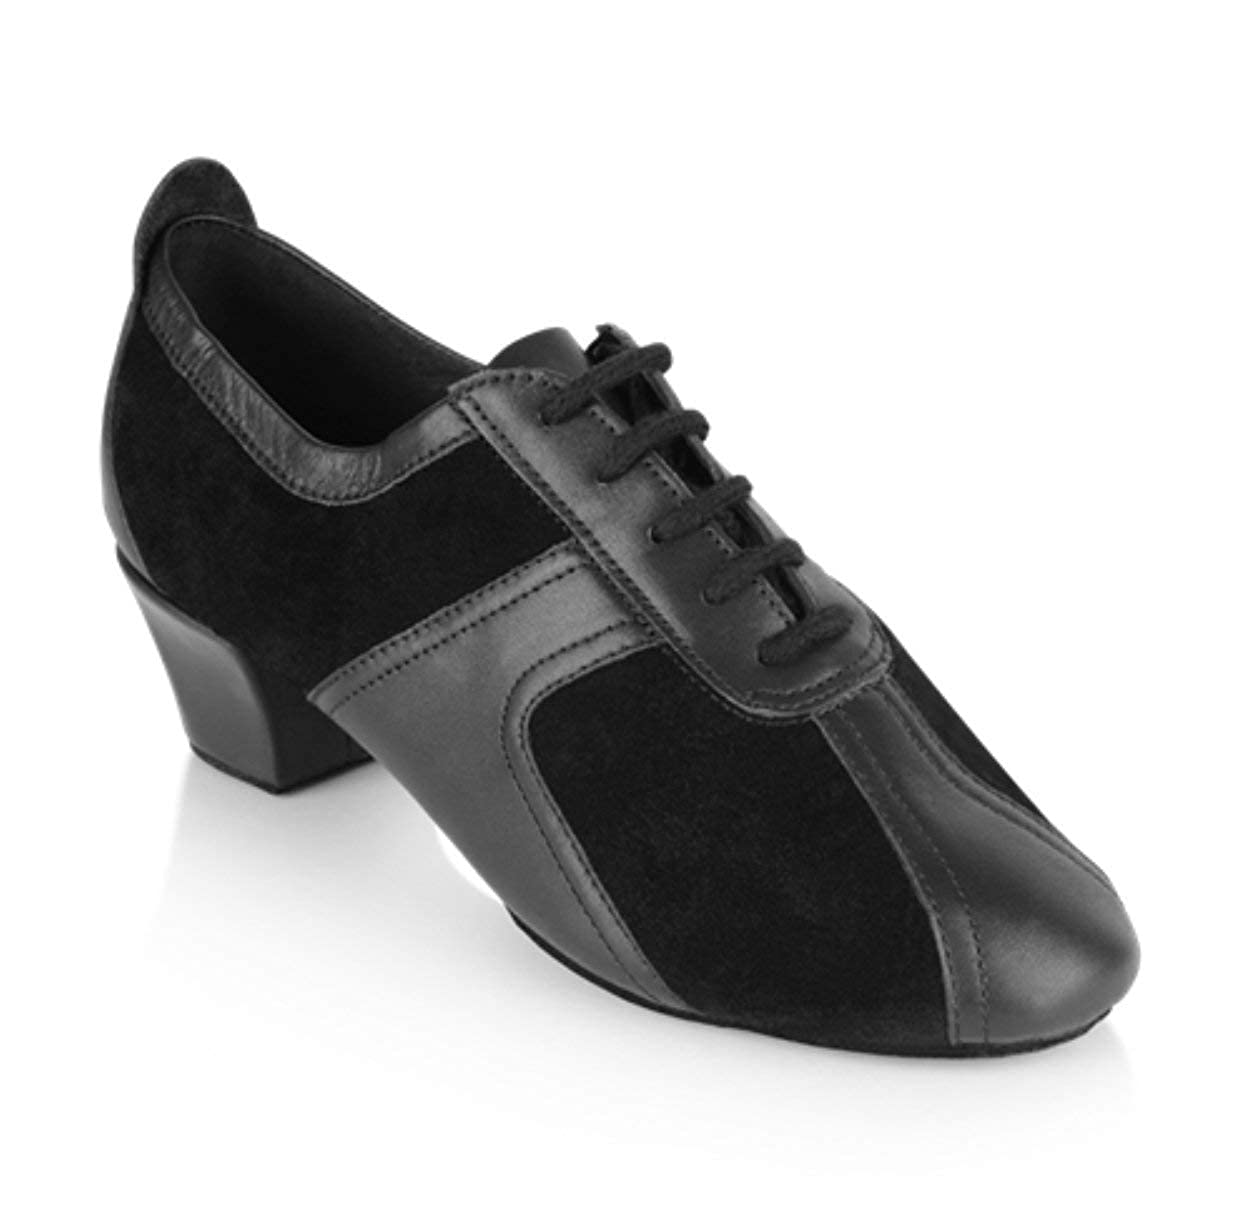 Ray Rose Breeze 410 Unisex Leather & Suede Practice Teaching Dance Shoes (1.5 Inch Heel)